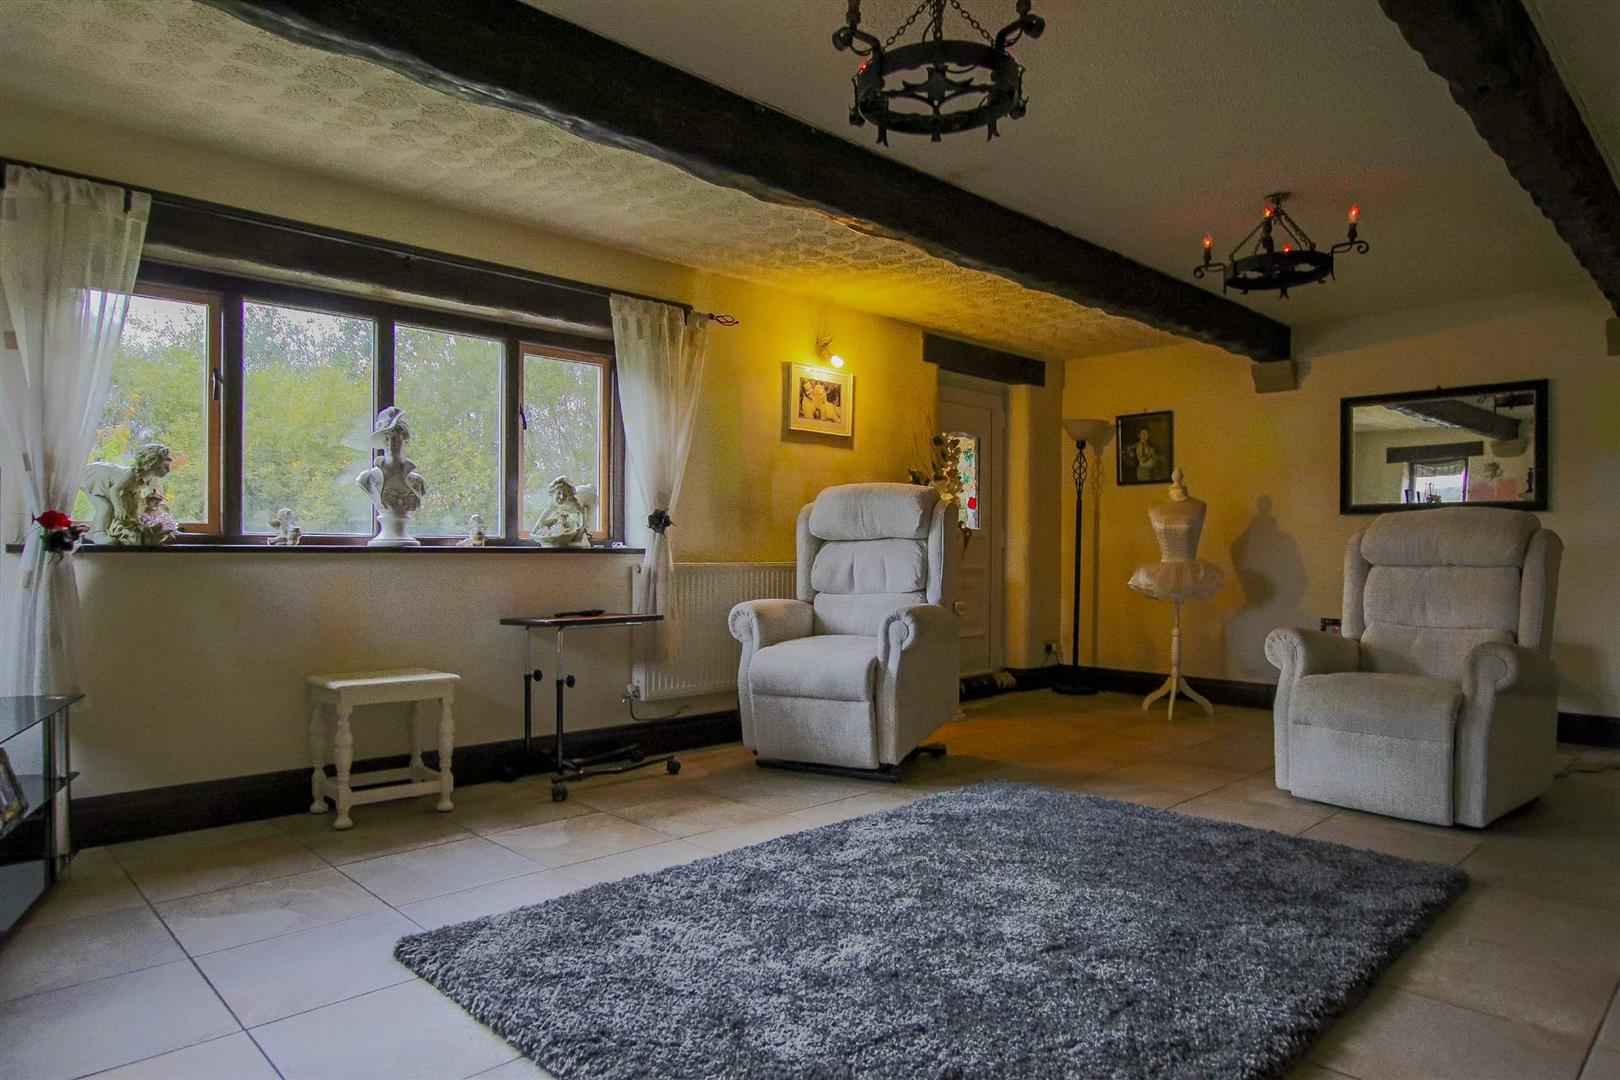 9 Bedroom Barn Conversion For Sale - Image 33